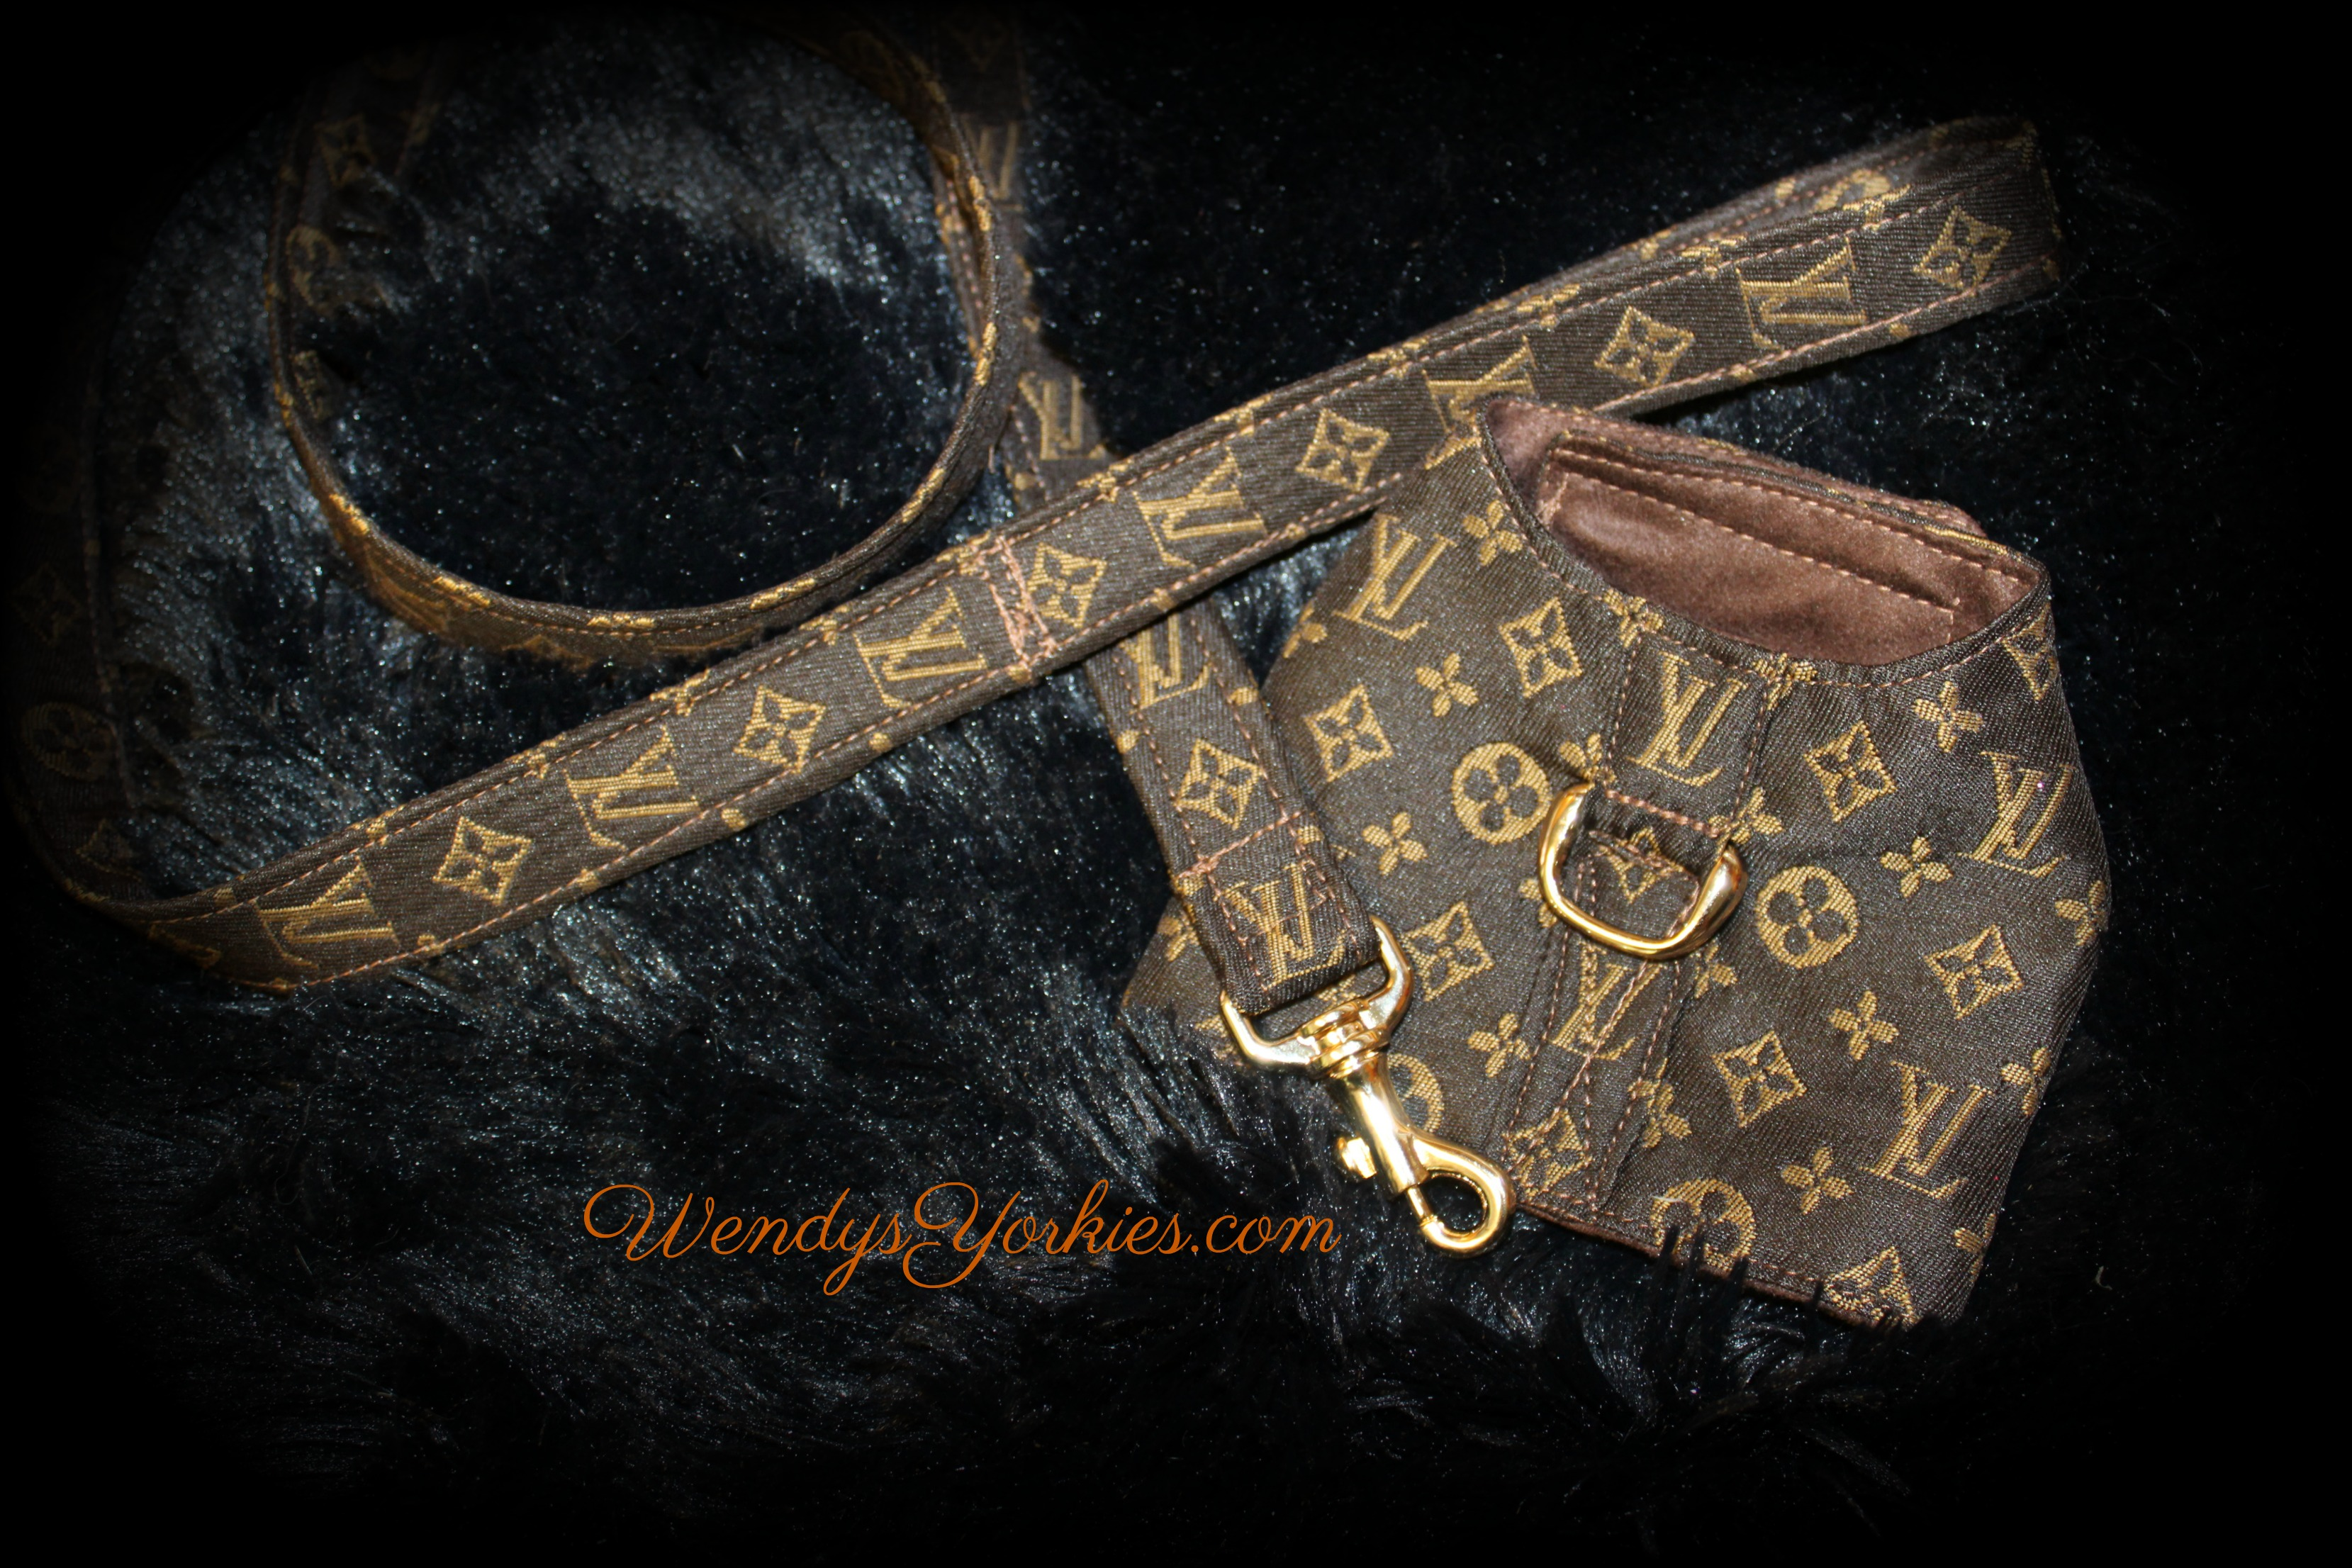 Lv Harness and leash combo, WendysYorkies.com